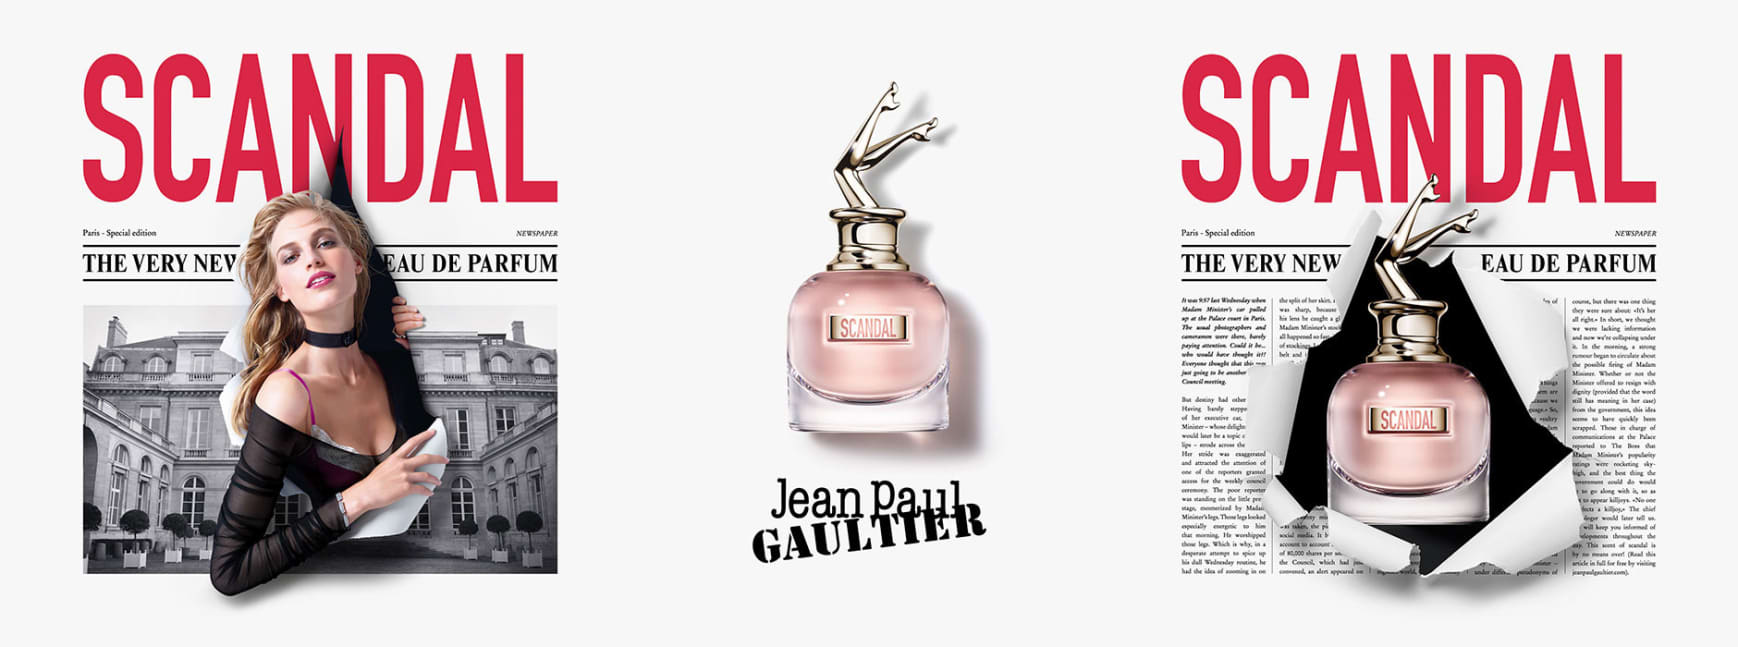 Jean Paul Gaultier: Scandal